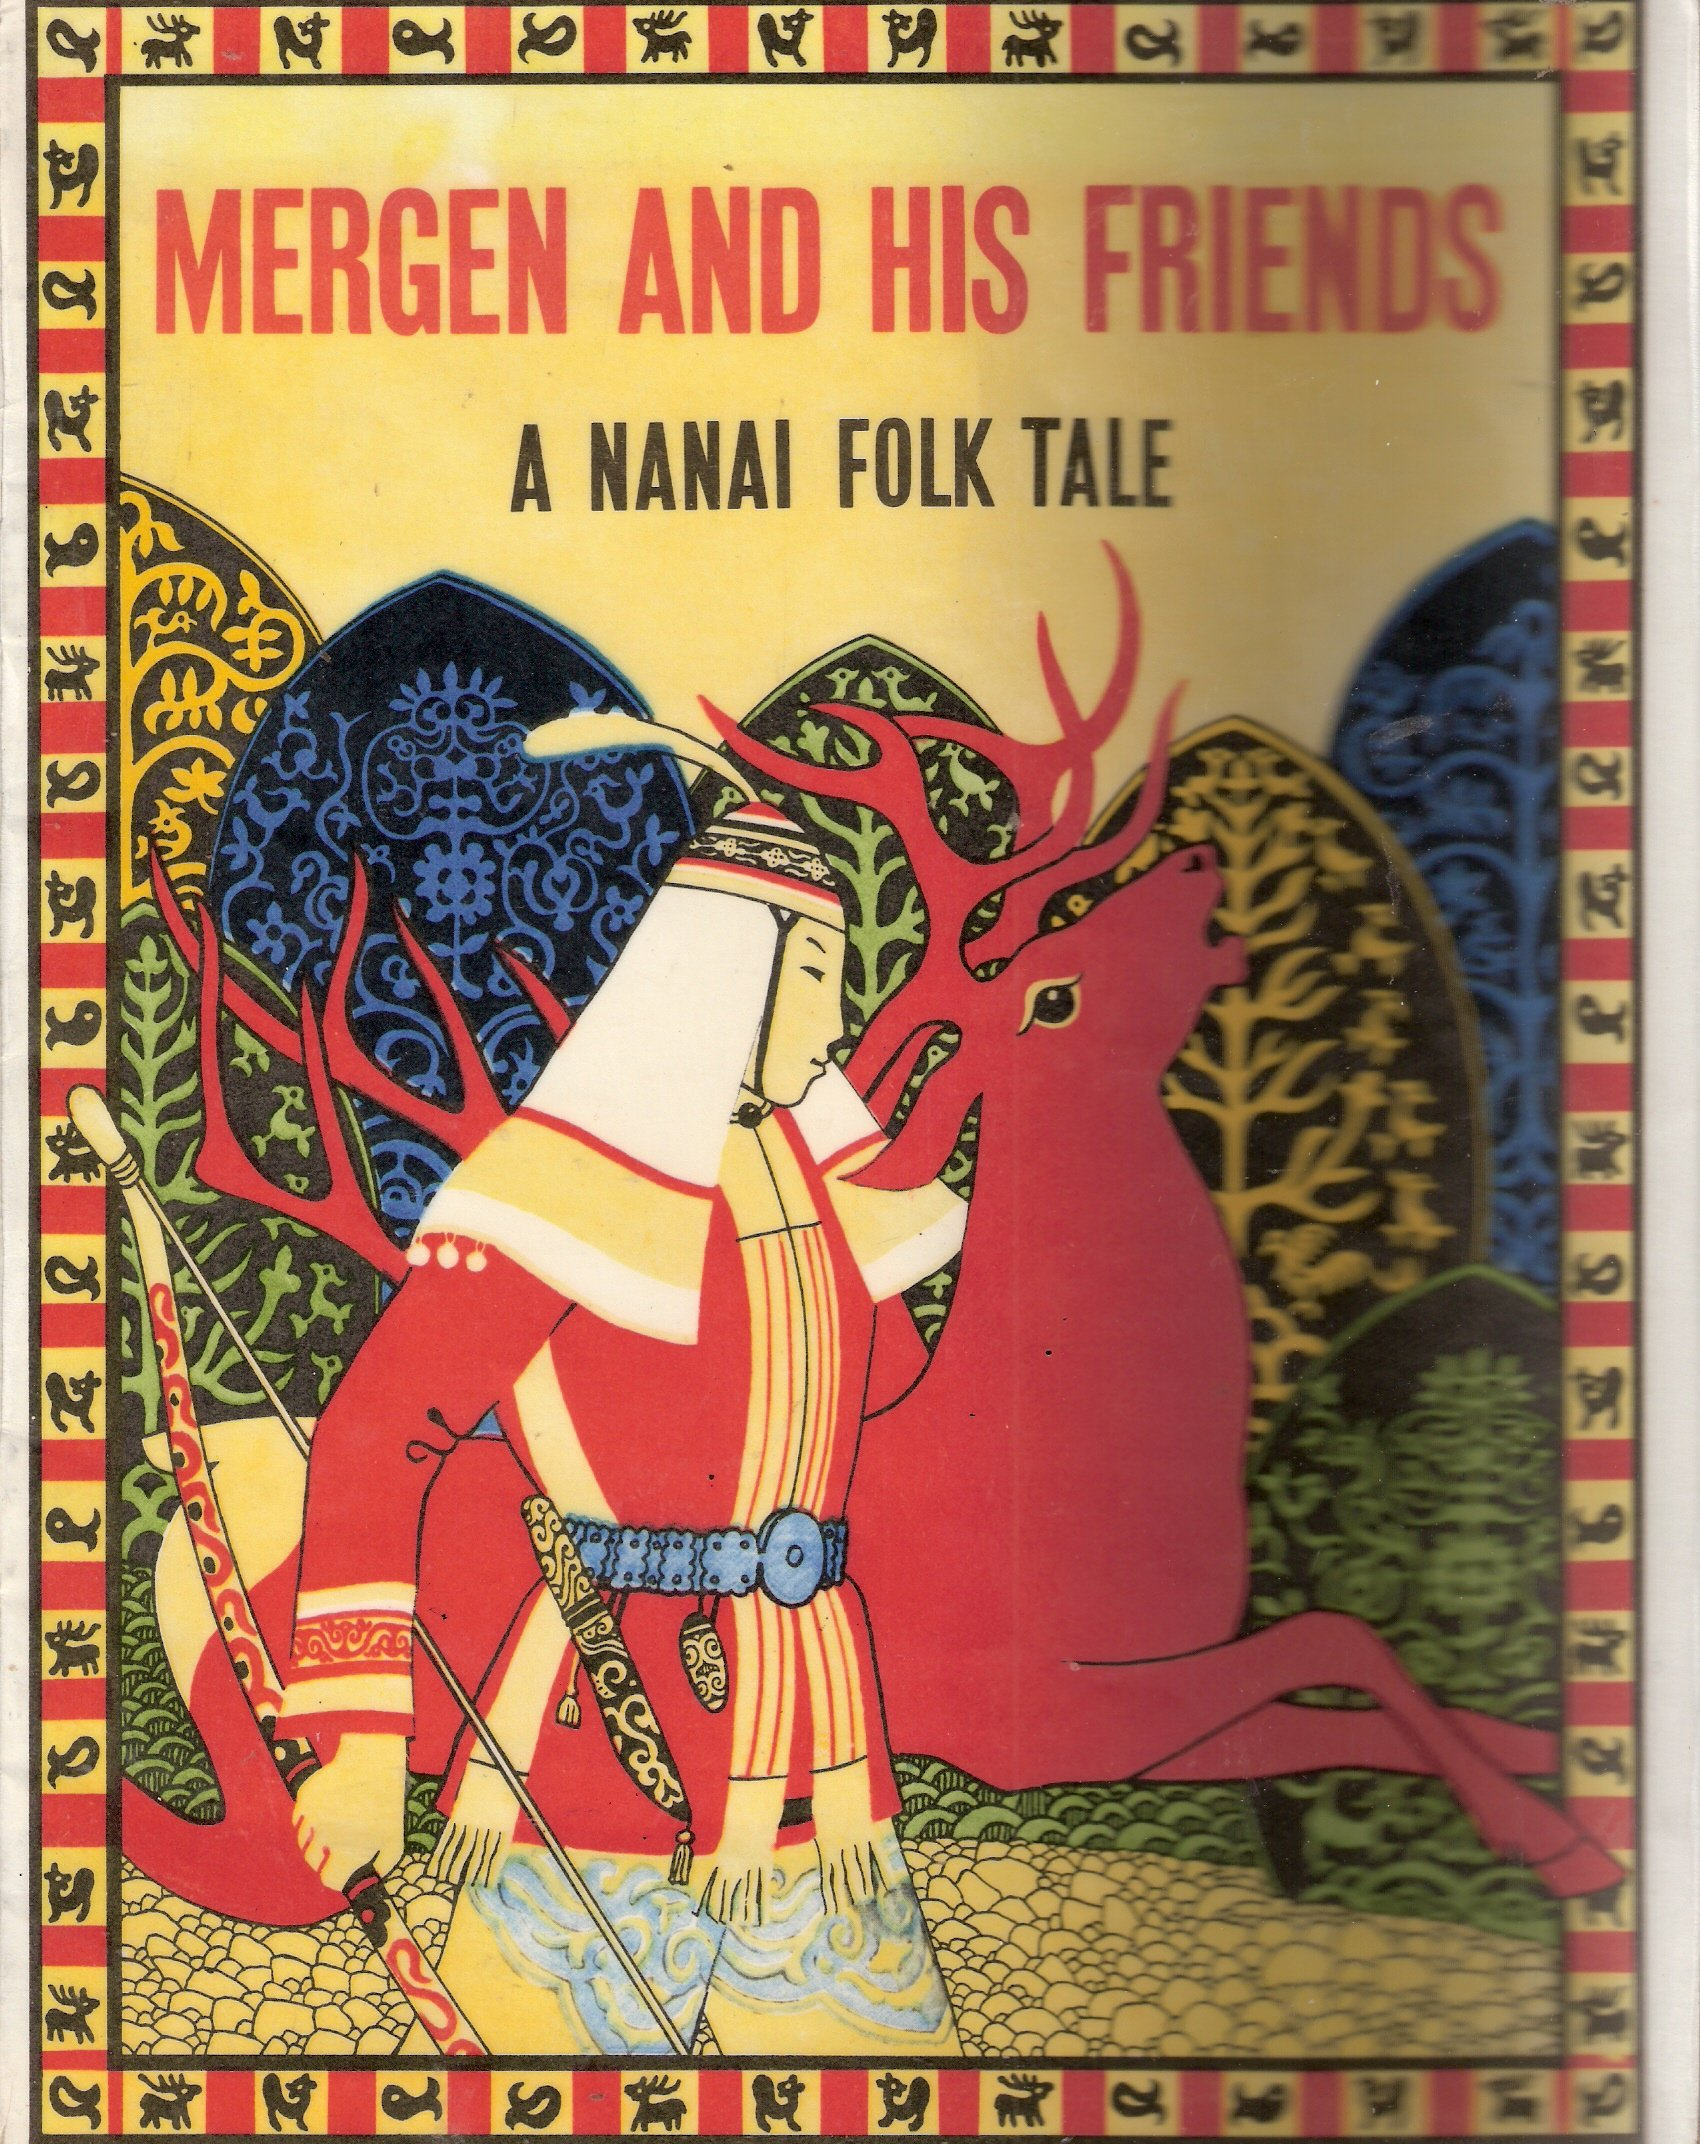 Mergen And His Friends: A Nanai Folk Tale, Riordan, Jim and Pavlishin, Gennady